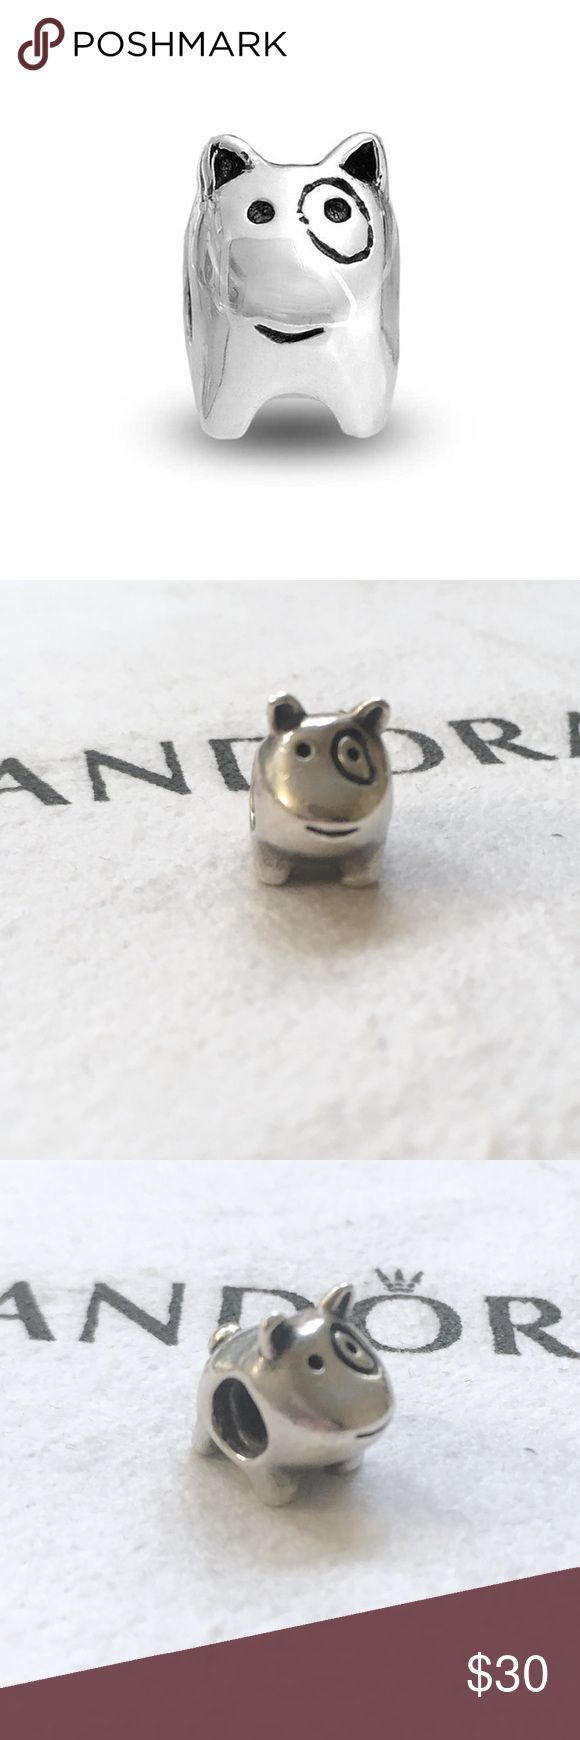 Pandora dog charm sterling silver doggie charm Authentic Pandora charm. Pandora dog charm with a circle around its eye. Reminds me of the Target bullseye terrier dog. Sterling silver charm stamped with S925 one one side and Ale on the other.   Bundle to save!   *Does not include the bracelet or cloth, and I'm sorry I do not have a box*  #Pandora dog Charm, Pandora doggie charm, Pandora puppy charm, Pandora terrier charm, Pandora Sterling silver charm, Pandora retired charm, Pandora…